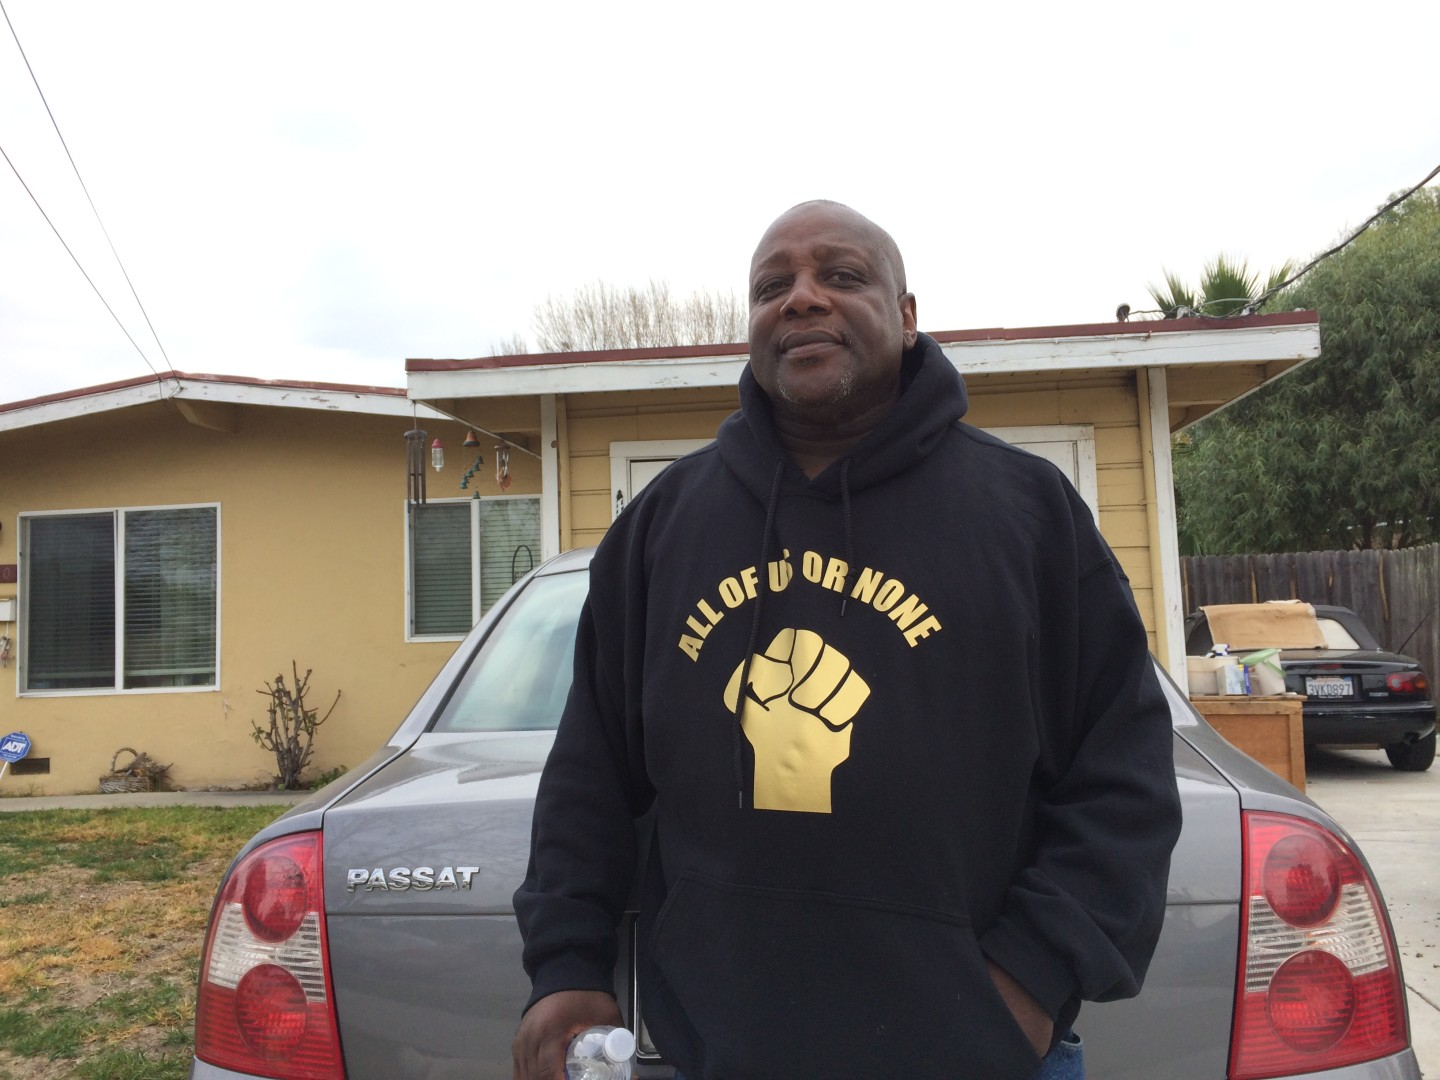 Dorsey Nunn stands in front of his house in Belle Haven on Jan. 16, 2015. Nunn's parents purchased the property in 1968. He estimates the three-bedroom house is now worth over $570,000, in part thanks to its proximity to Facebook.